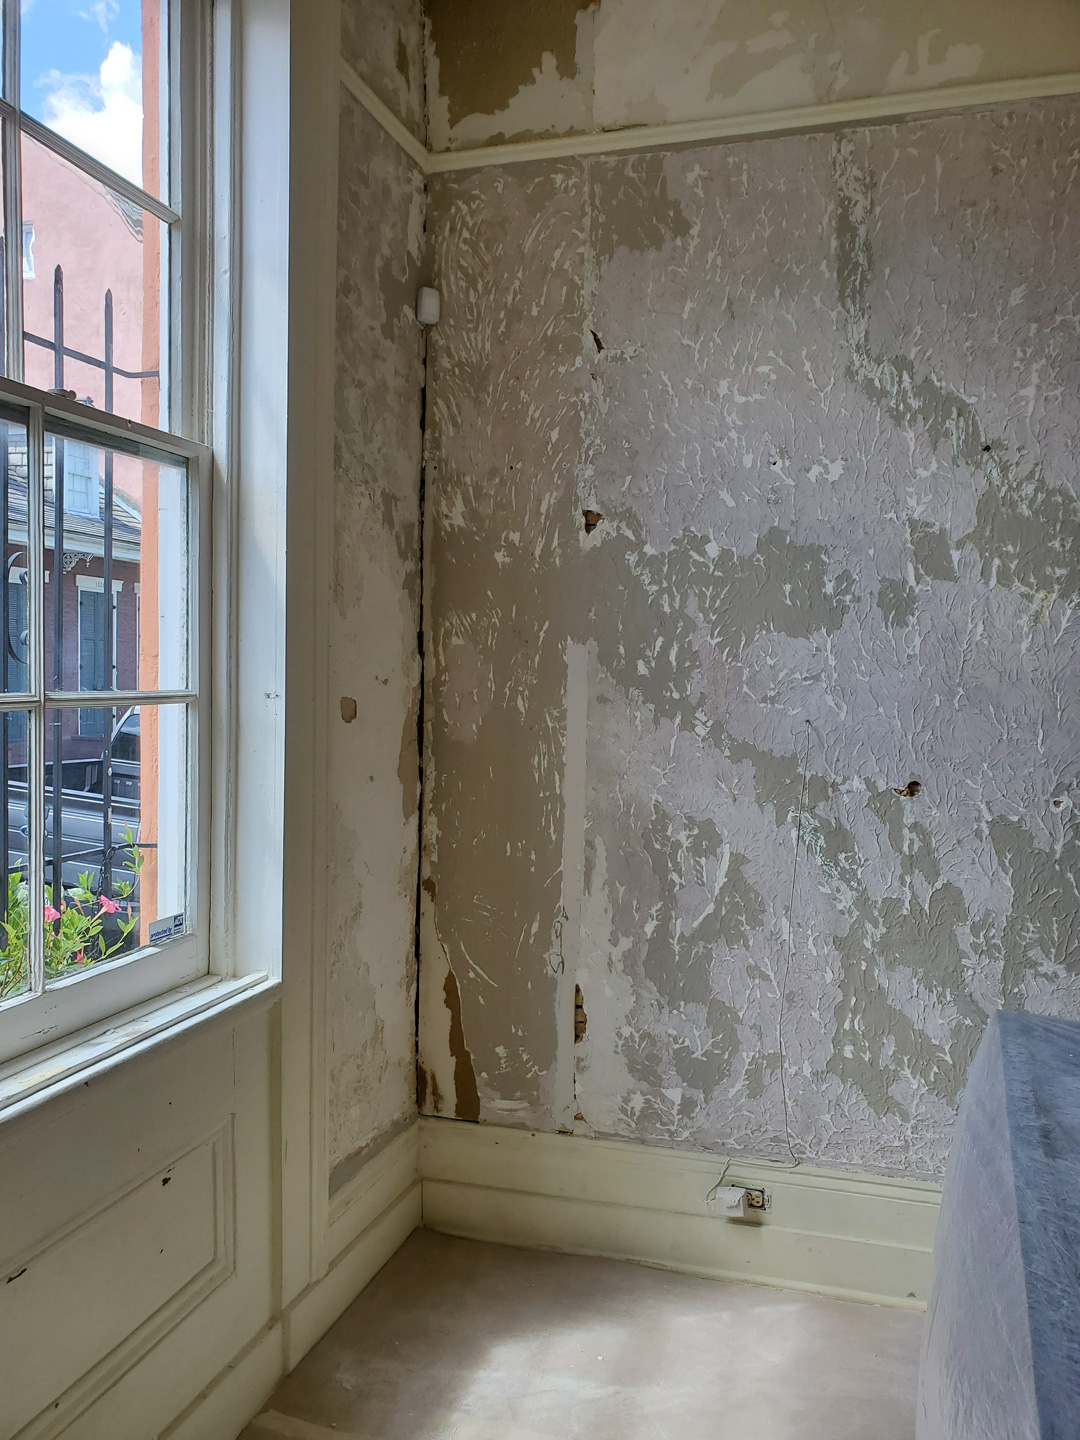 Sylvia T Designs – French Quarter Creole Cottage – Dramatic Plaster Finishes and Gold Leaf Ceilings – The walls certainly needed some serious TLC before we could work our magic and deliver the striking plaster finishes!